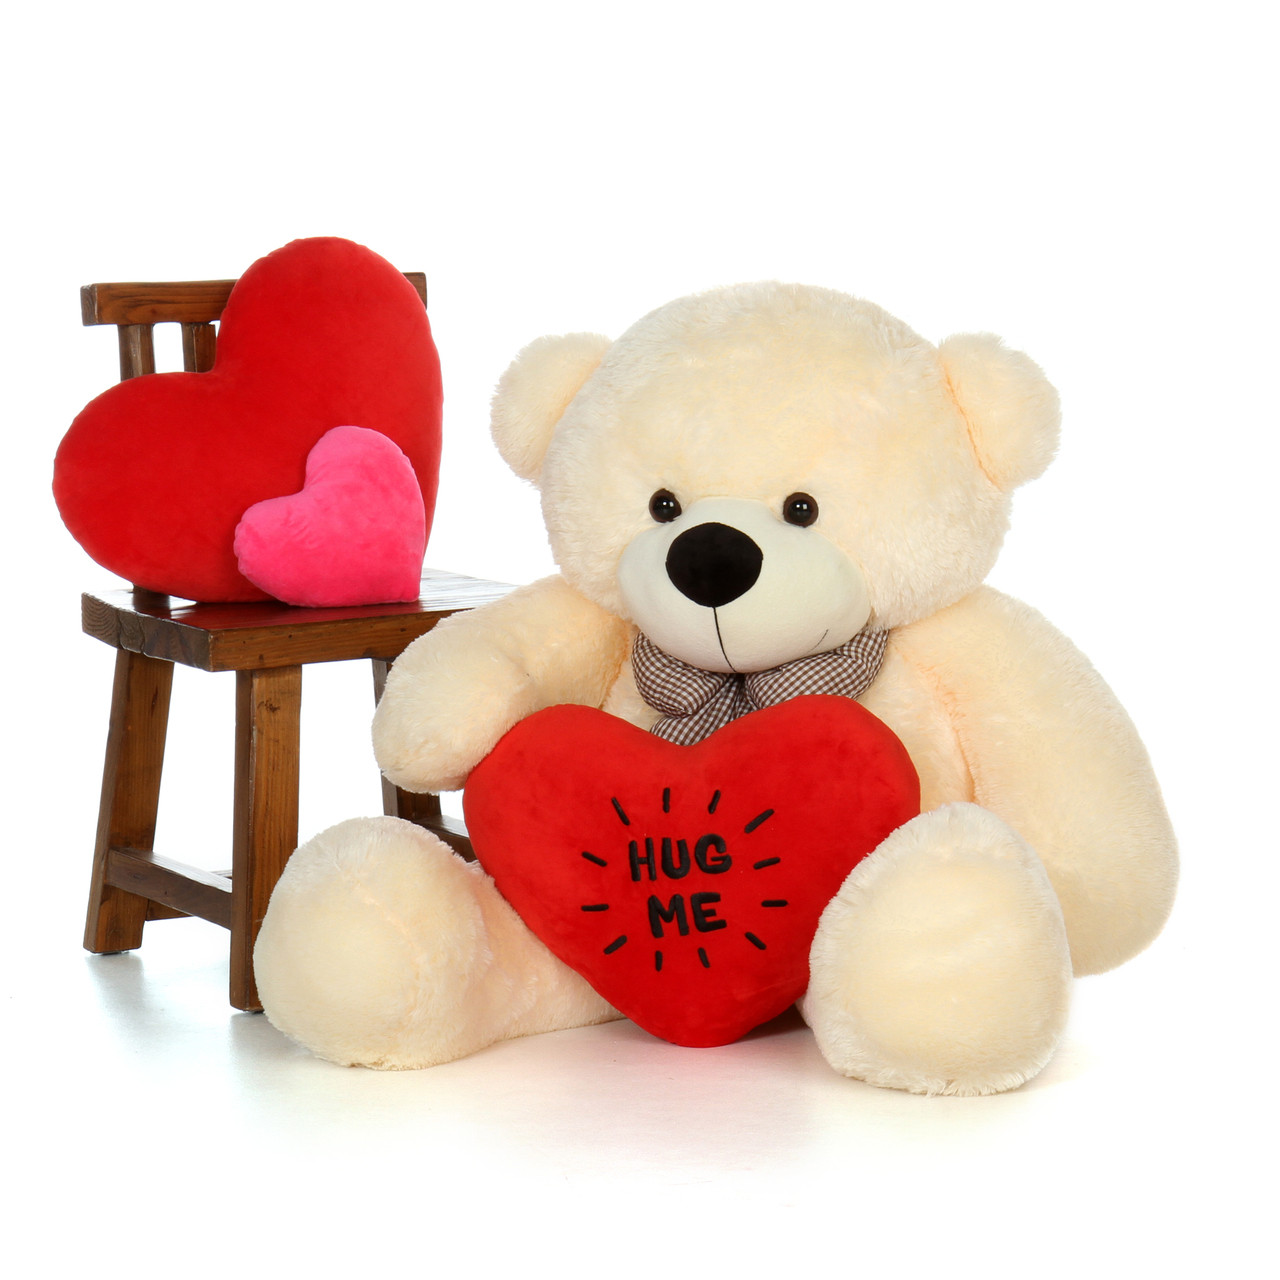 4e6a5ebc9d7 48in Big Life Size Valentine s Day Teddy Bear Vanilla Cream Cozy Cuddles  with beautiful  Hug Me  red heart pillow